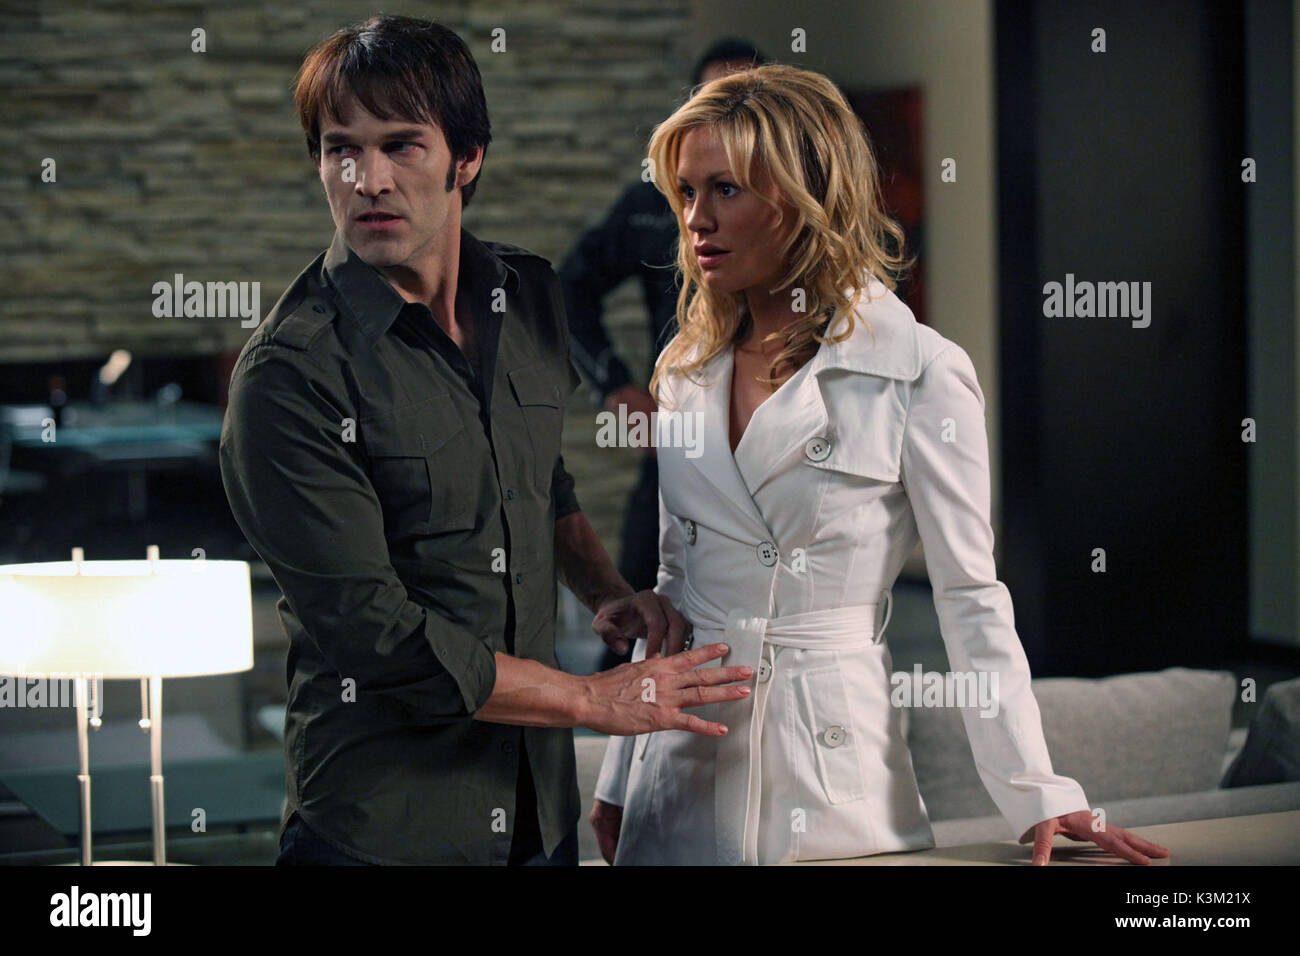 TRUE BLOOD Series,2/Episode,8/Timebomb STEPHEN MOYER as Bill Compton, ANNA PAQUIN as Sookie Stackhouse       Date: - Stock Image